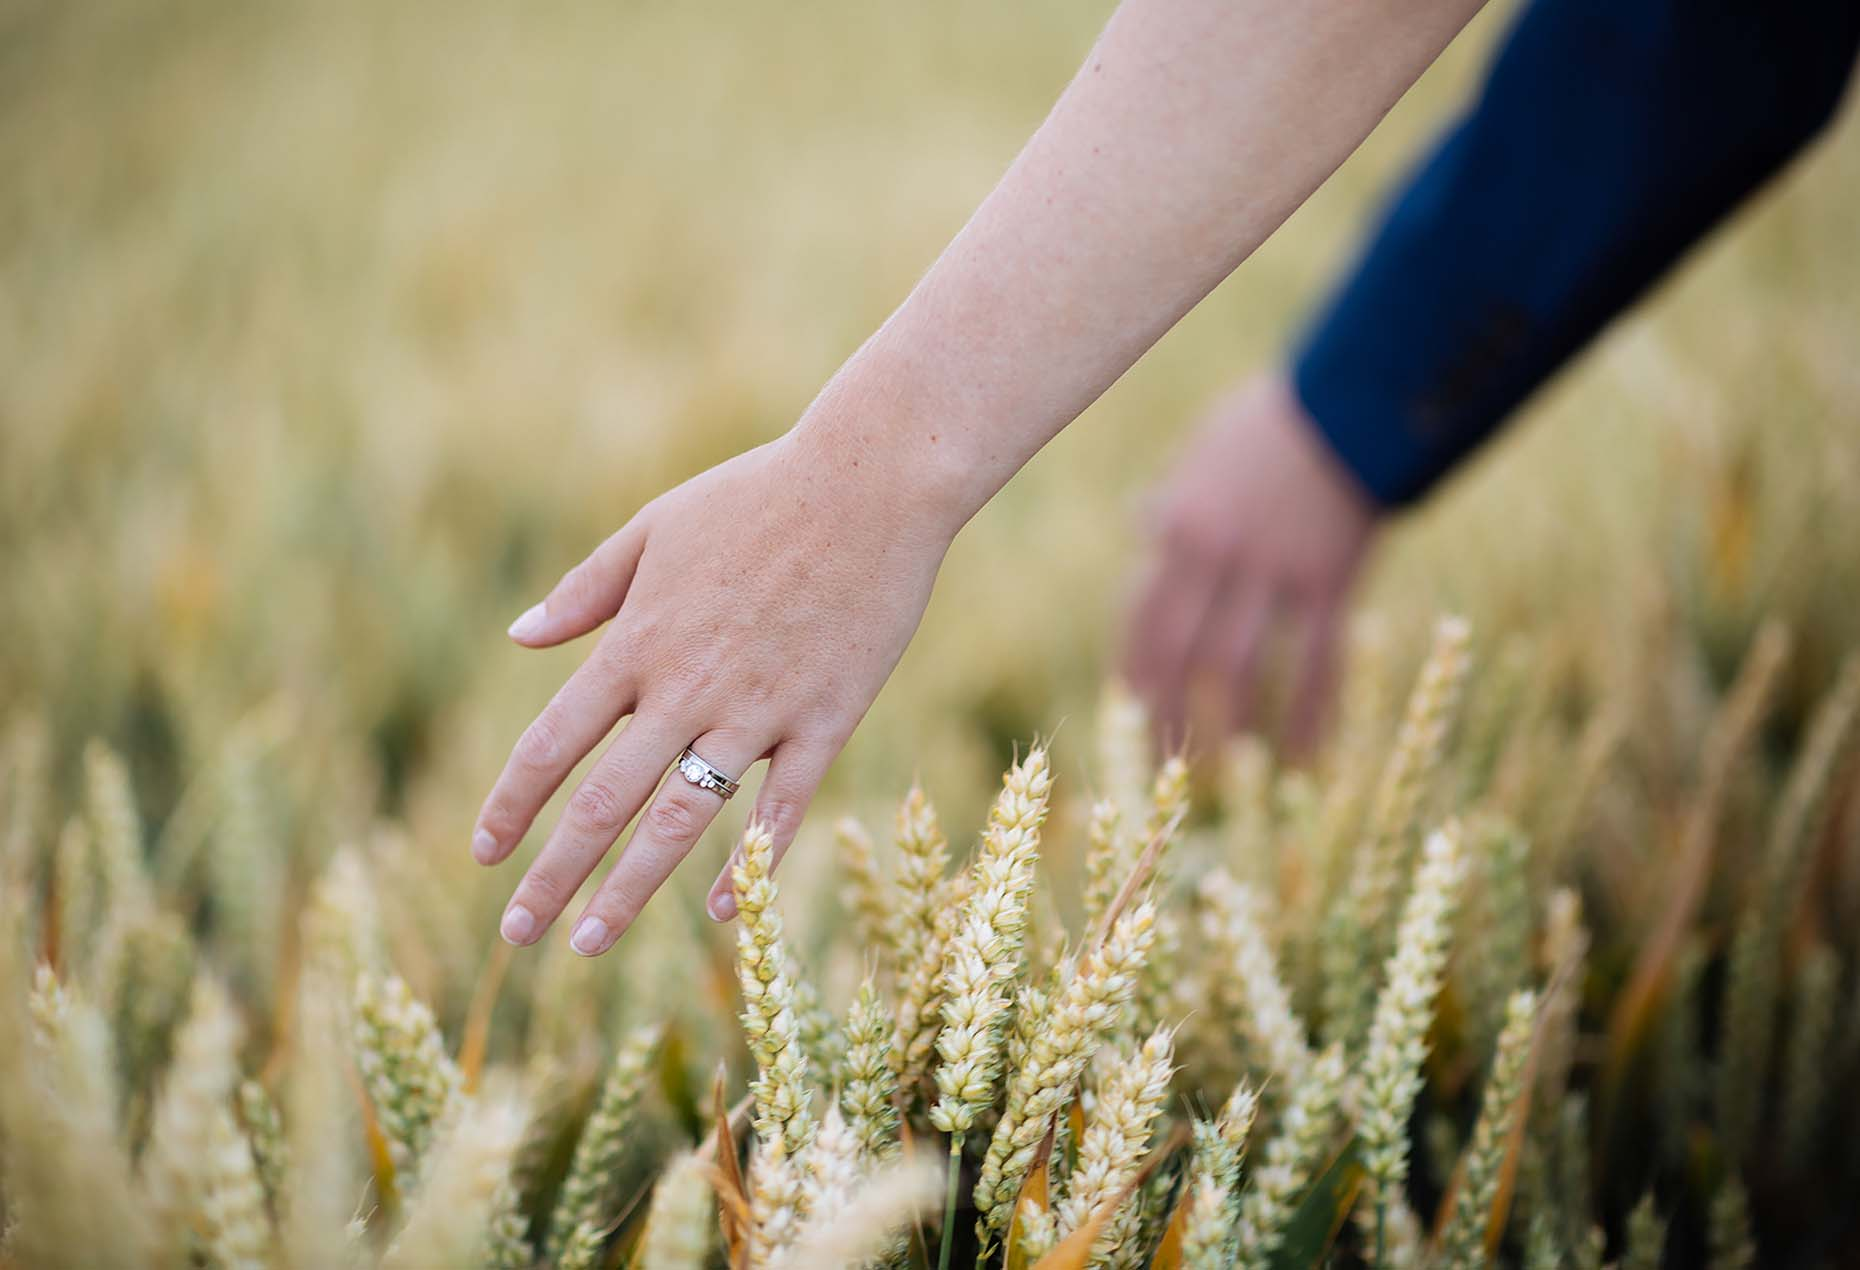 field-rural-outdoor-wedding-bride-groom-detail-hands-28